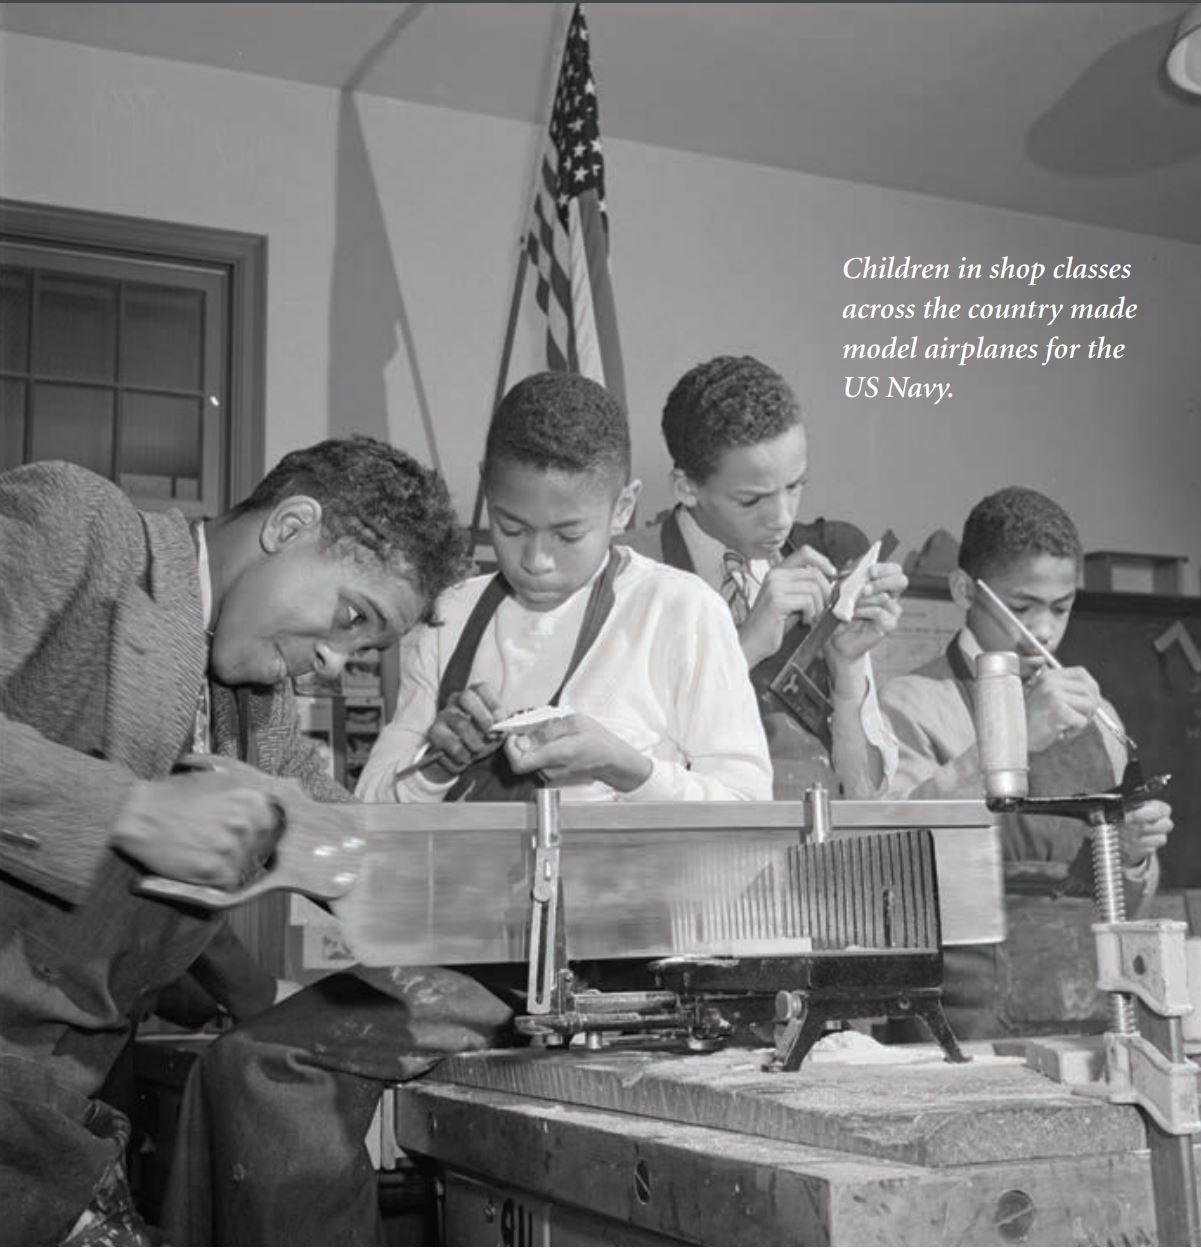 Load Boys Building Model Aircrafts, Courtesy: Library of Congress in Main Image Viewer